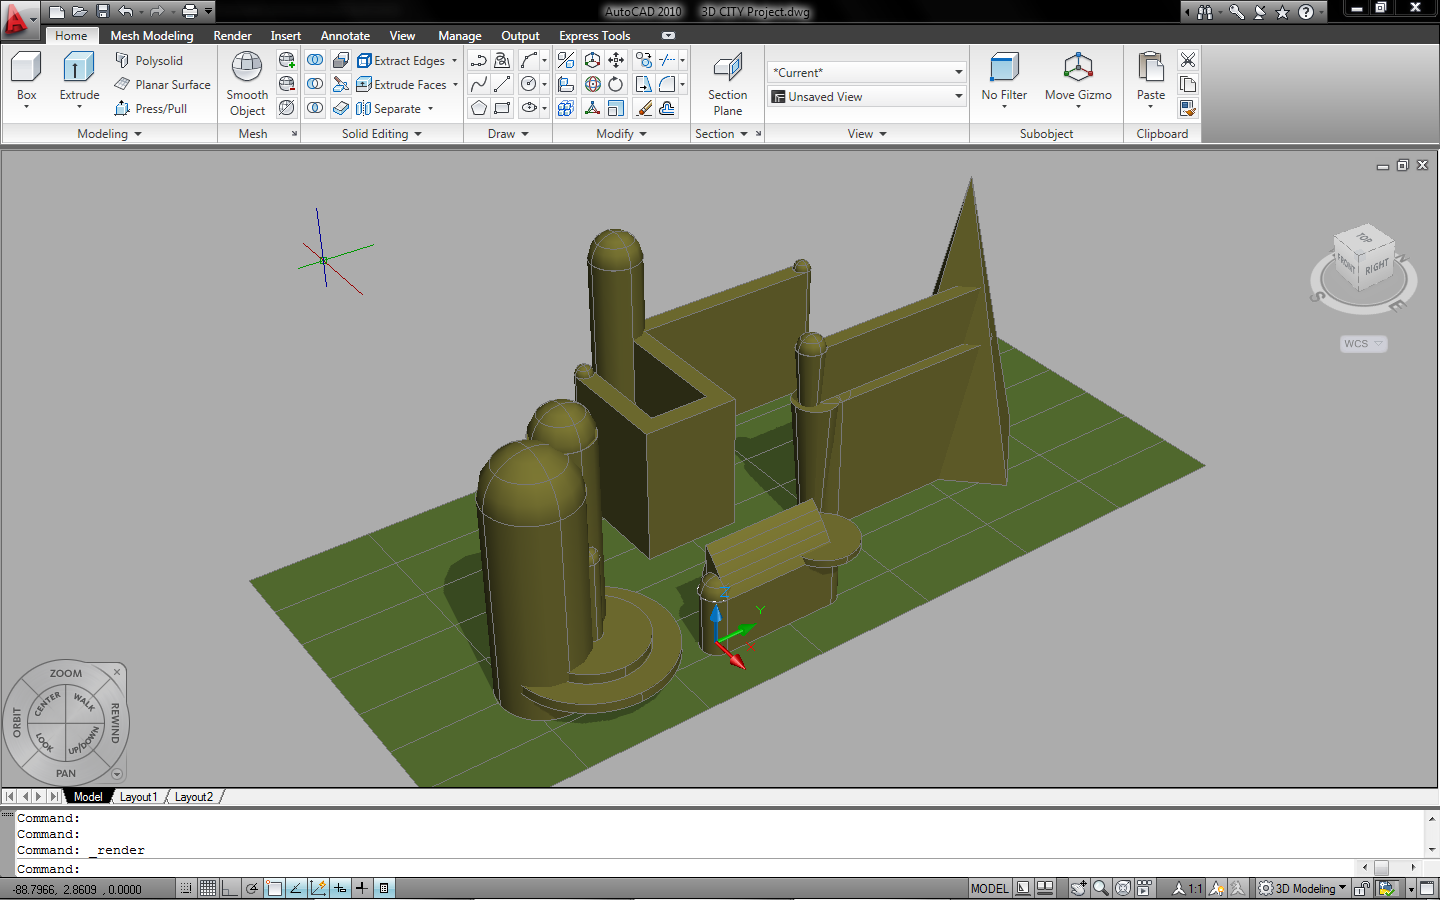 AutoCAD 2010 Free Download Full Version For Windows [32-64